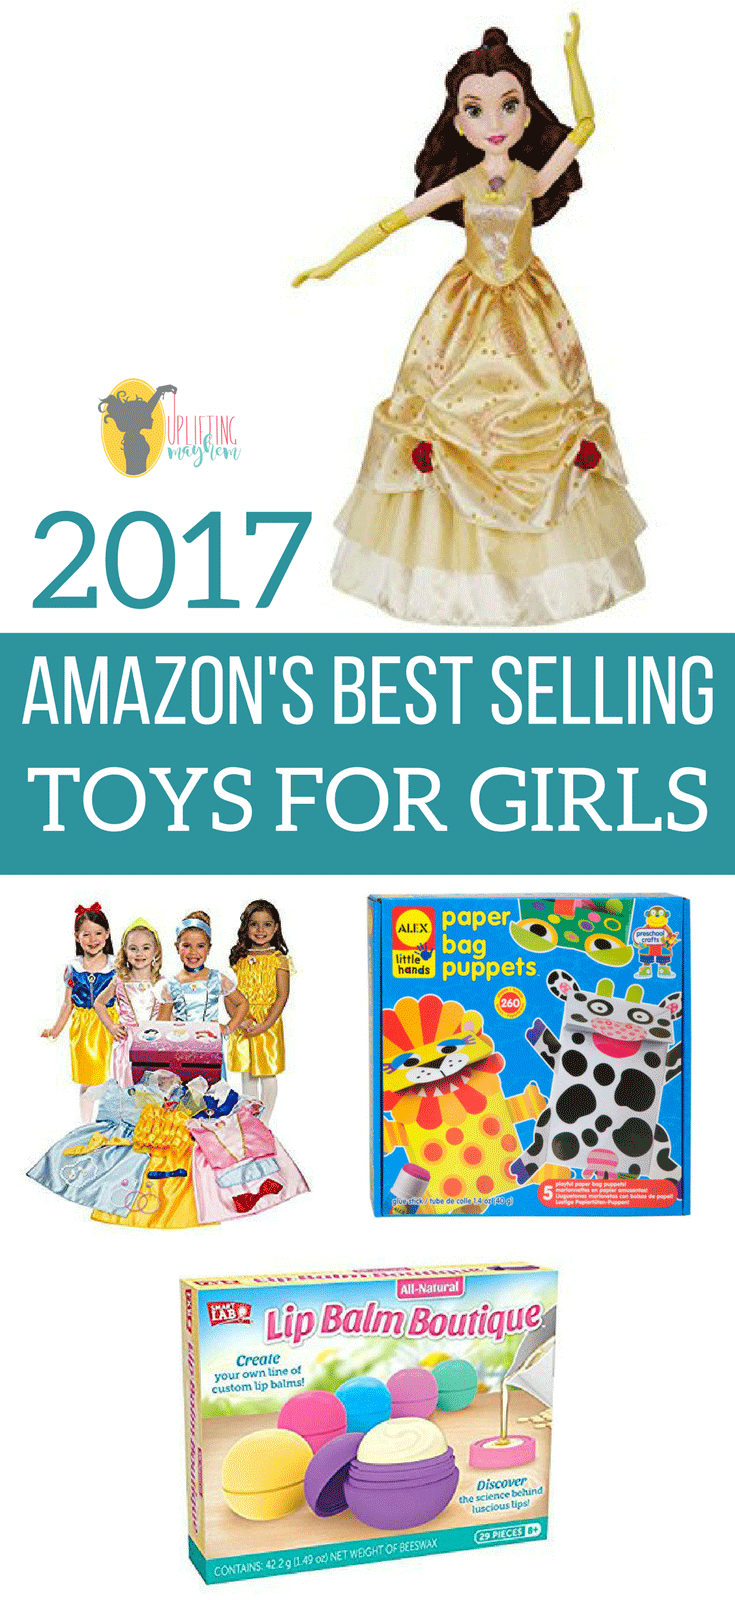 Amazon's Best Selling Toys for Girls